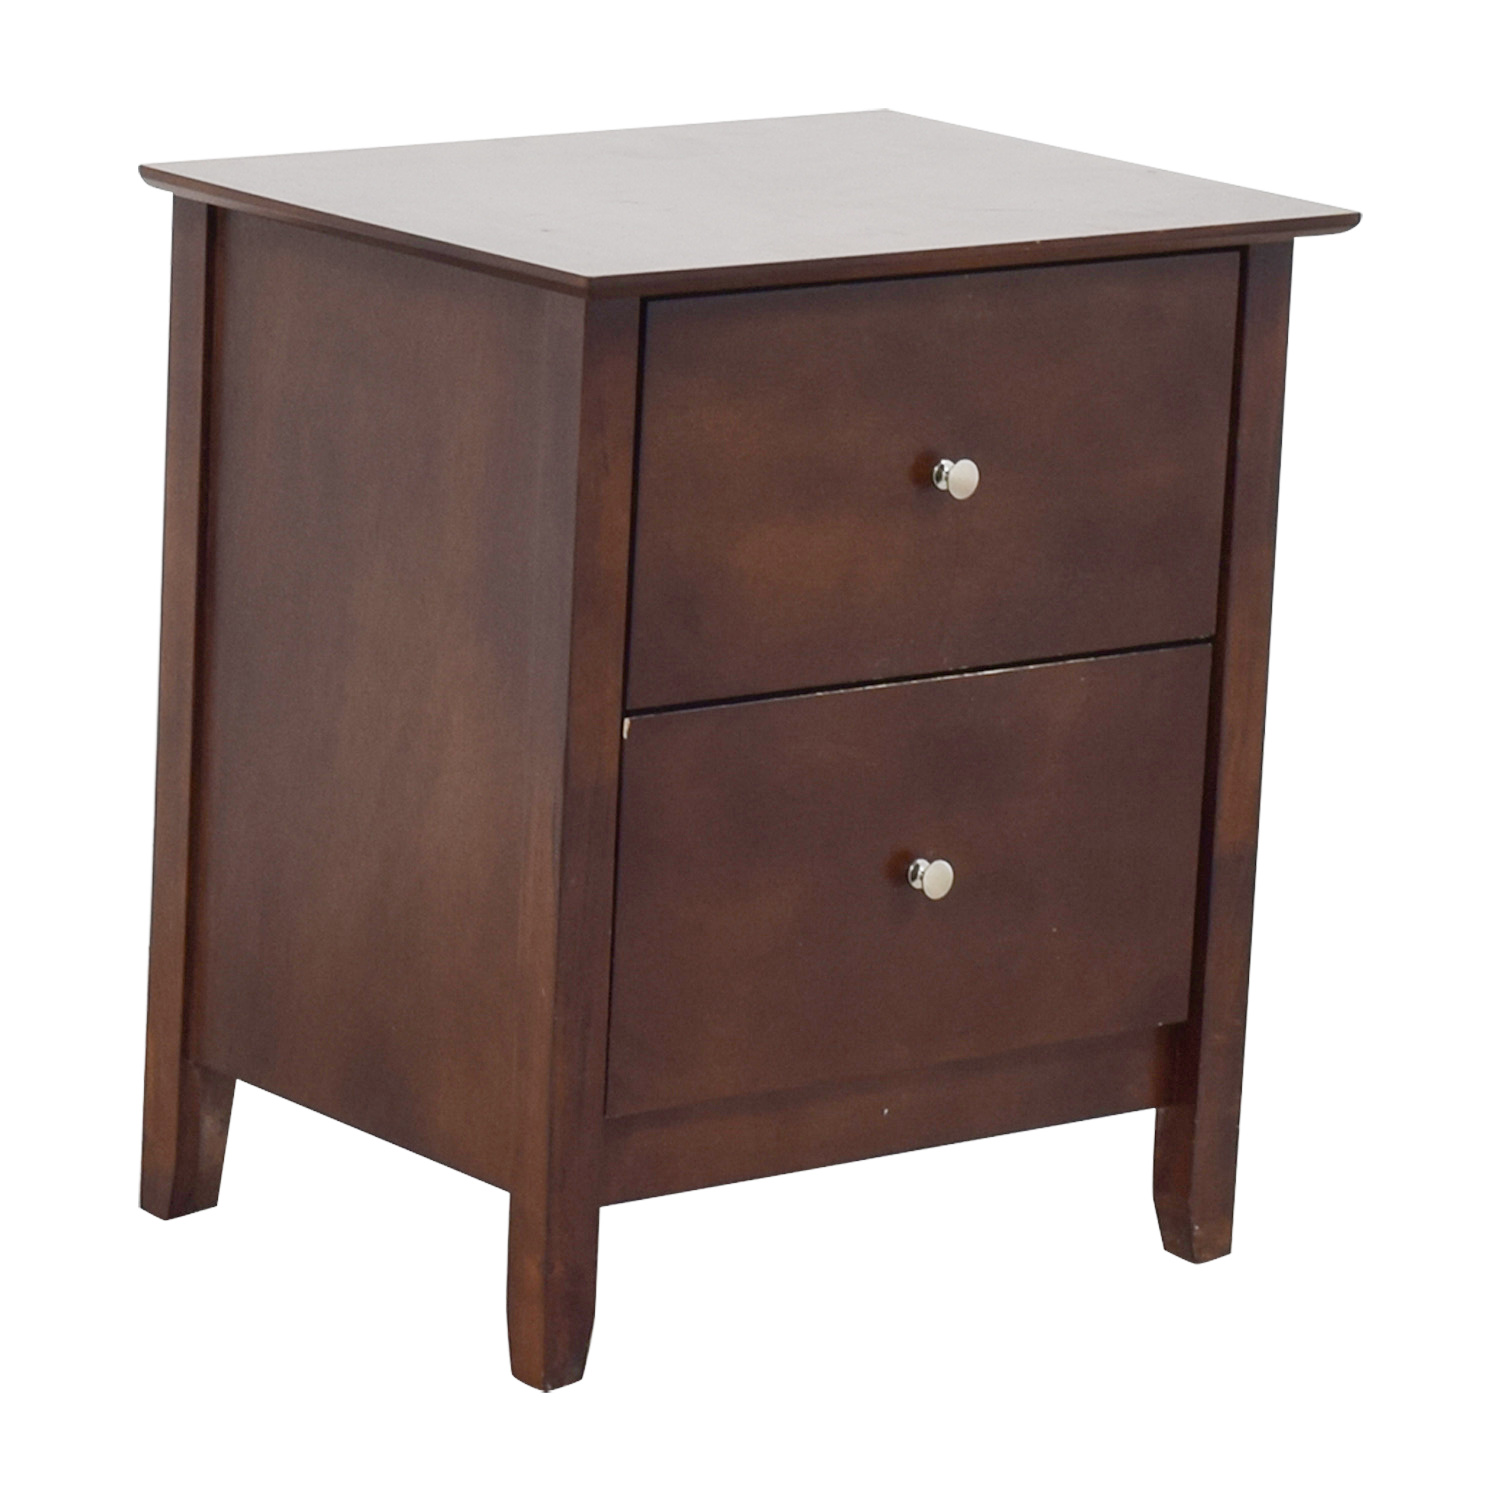 Bobs Discount Furniture Bobs Furniture Two-Drawer Nightstand nj